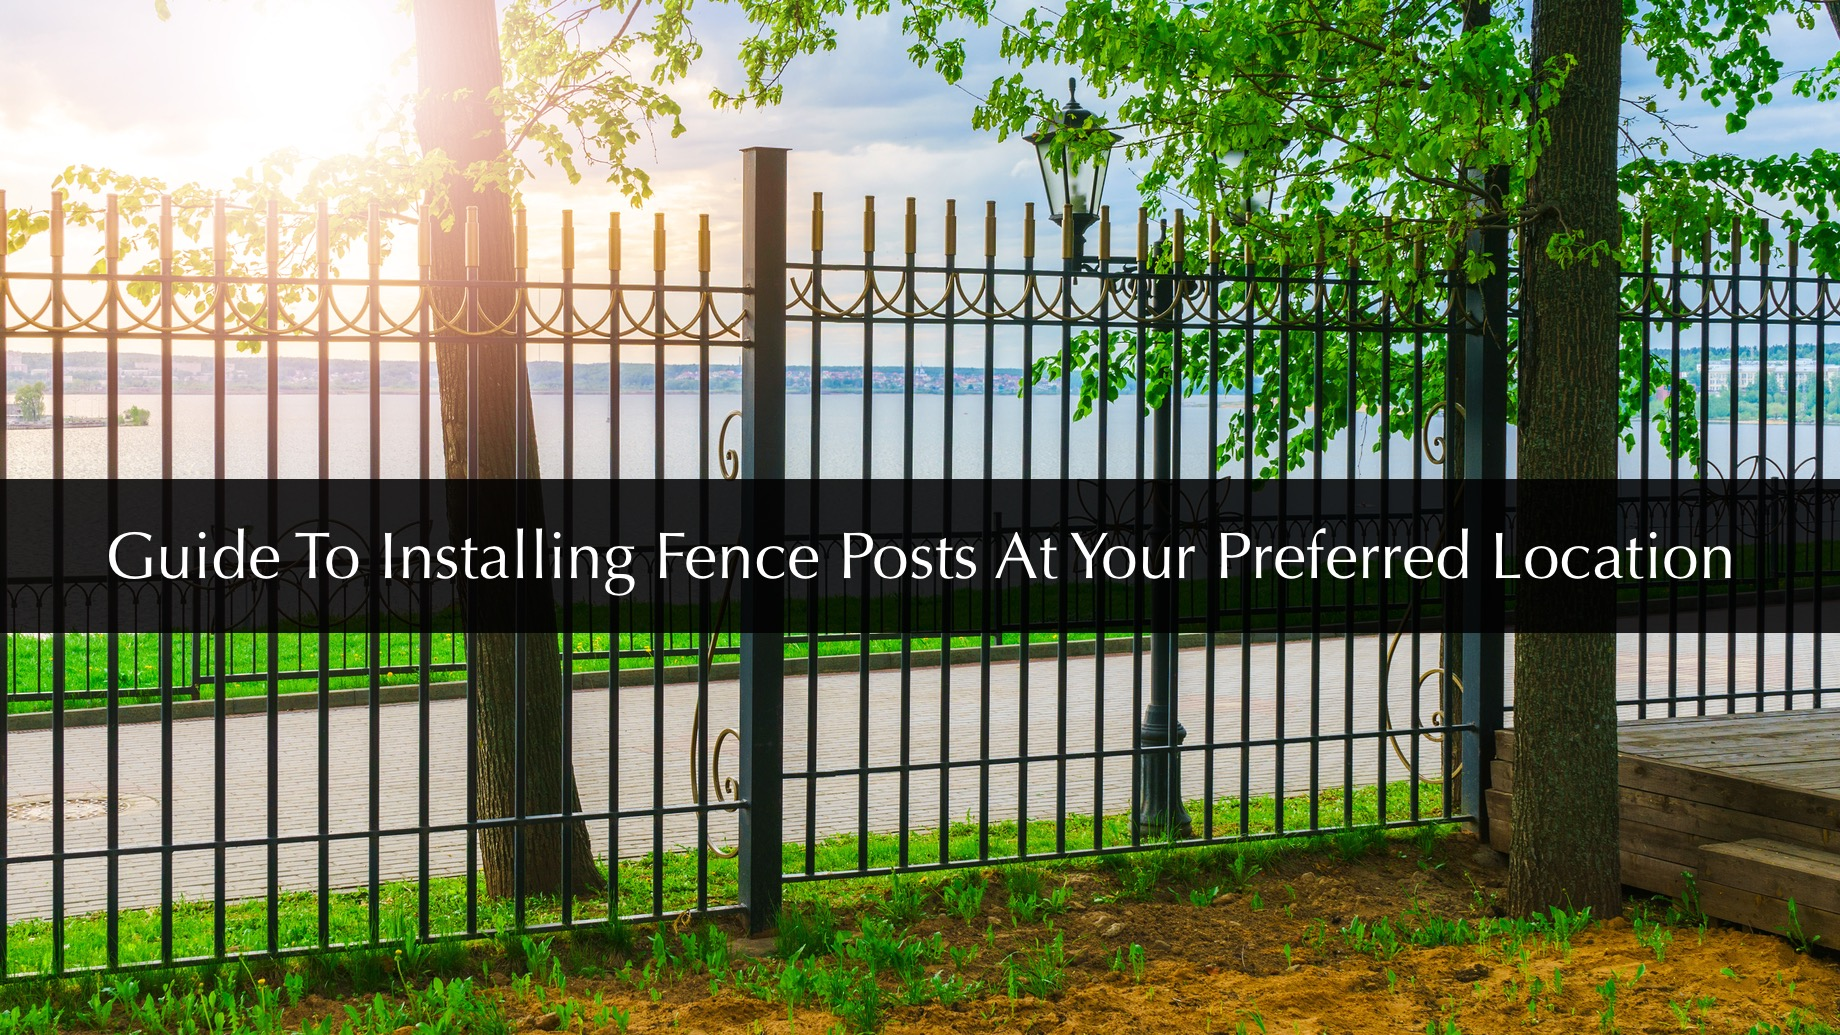 Guide To Installing Fence Posts At Your Preferred Location